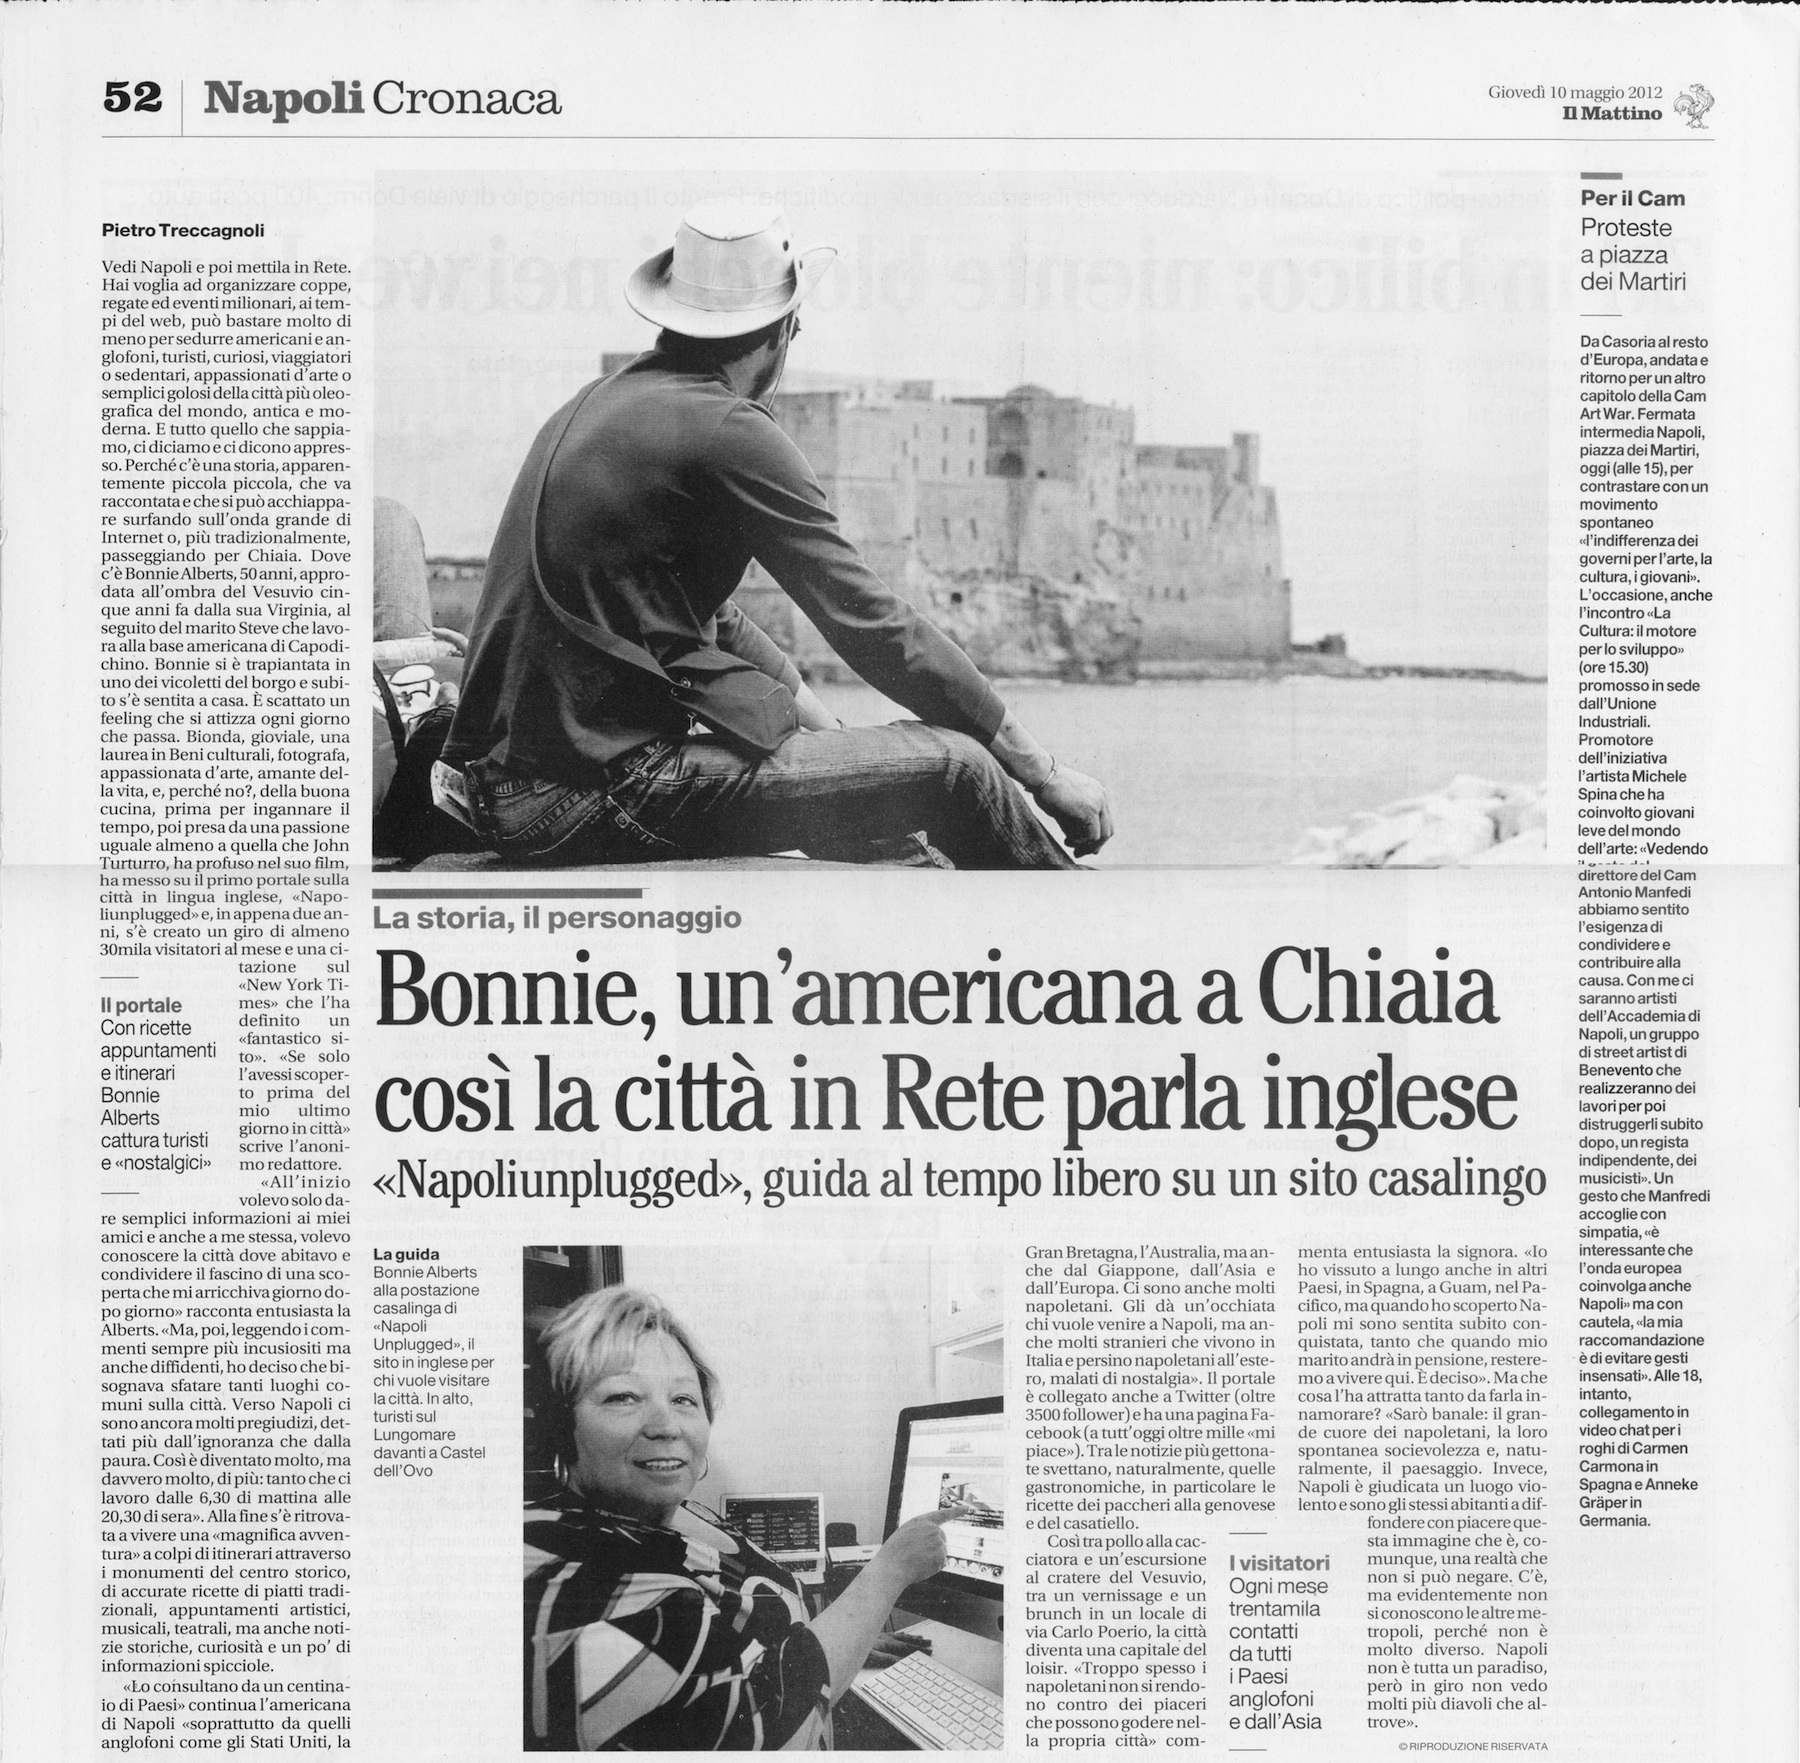 An Interview by the Il Mattino